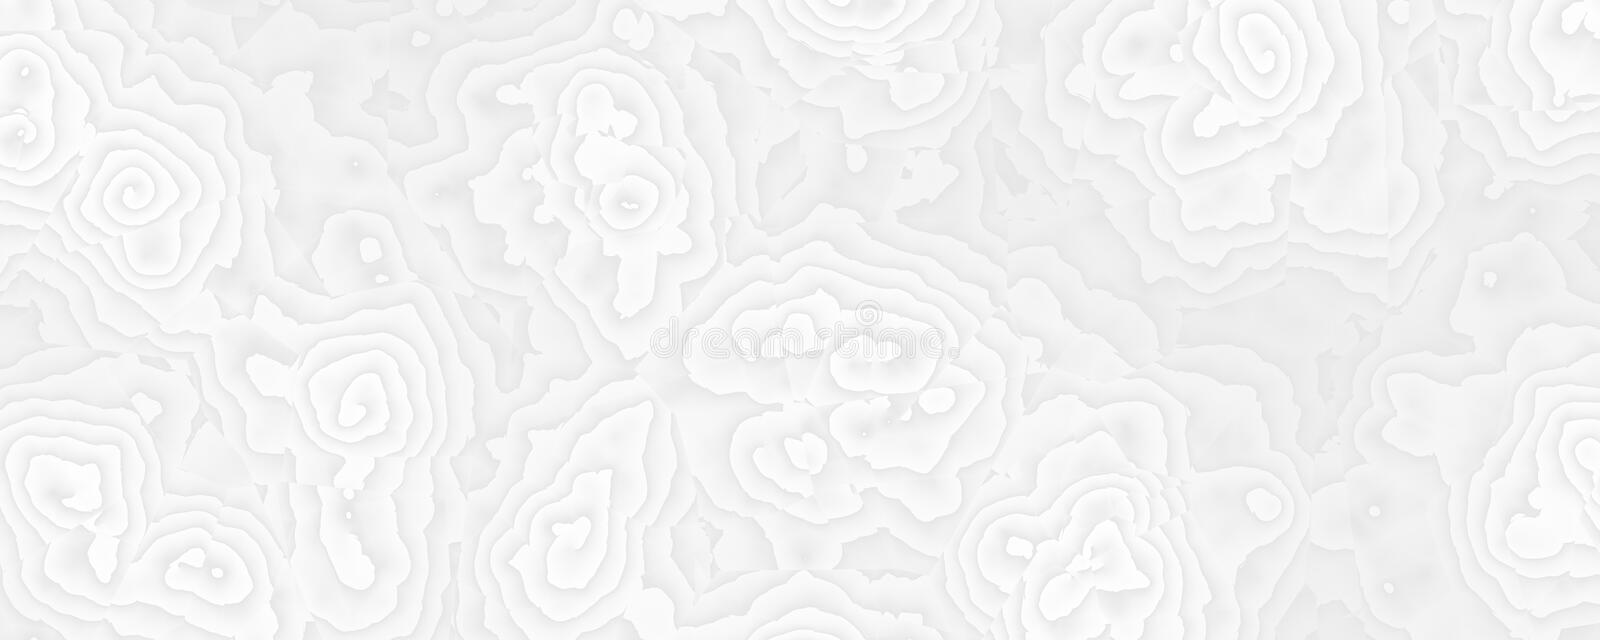 Abstract white rose design background royalty free illustration